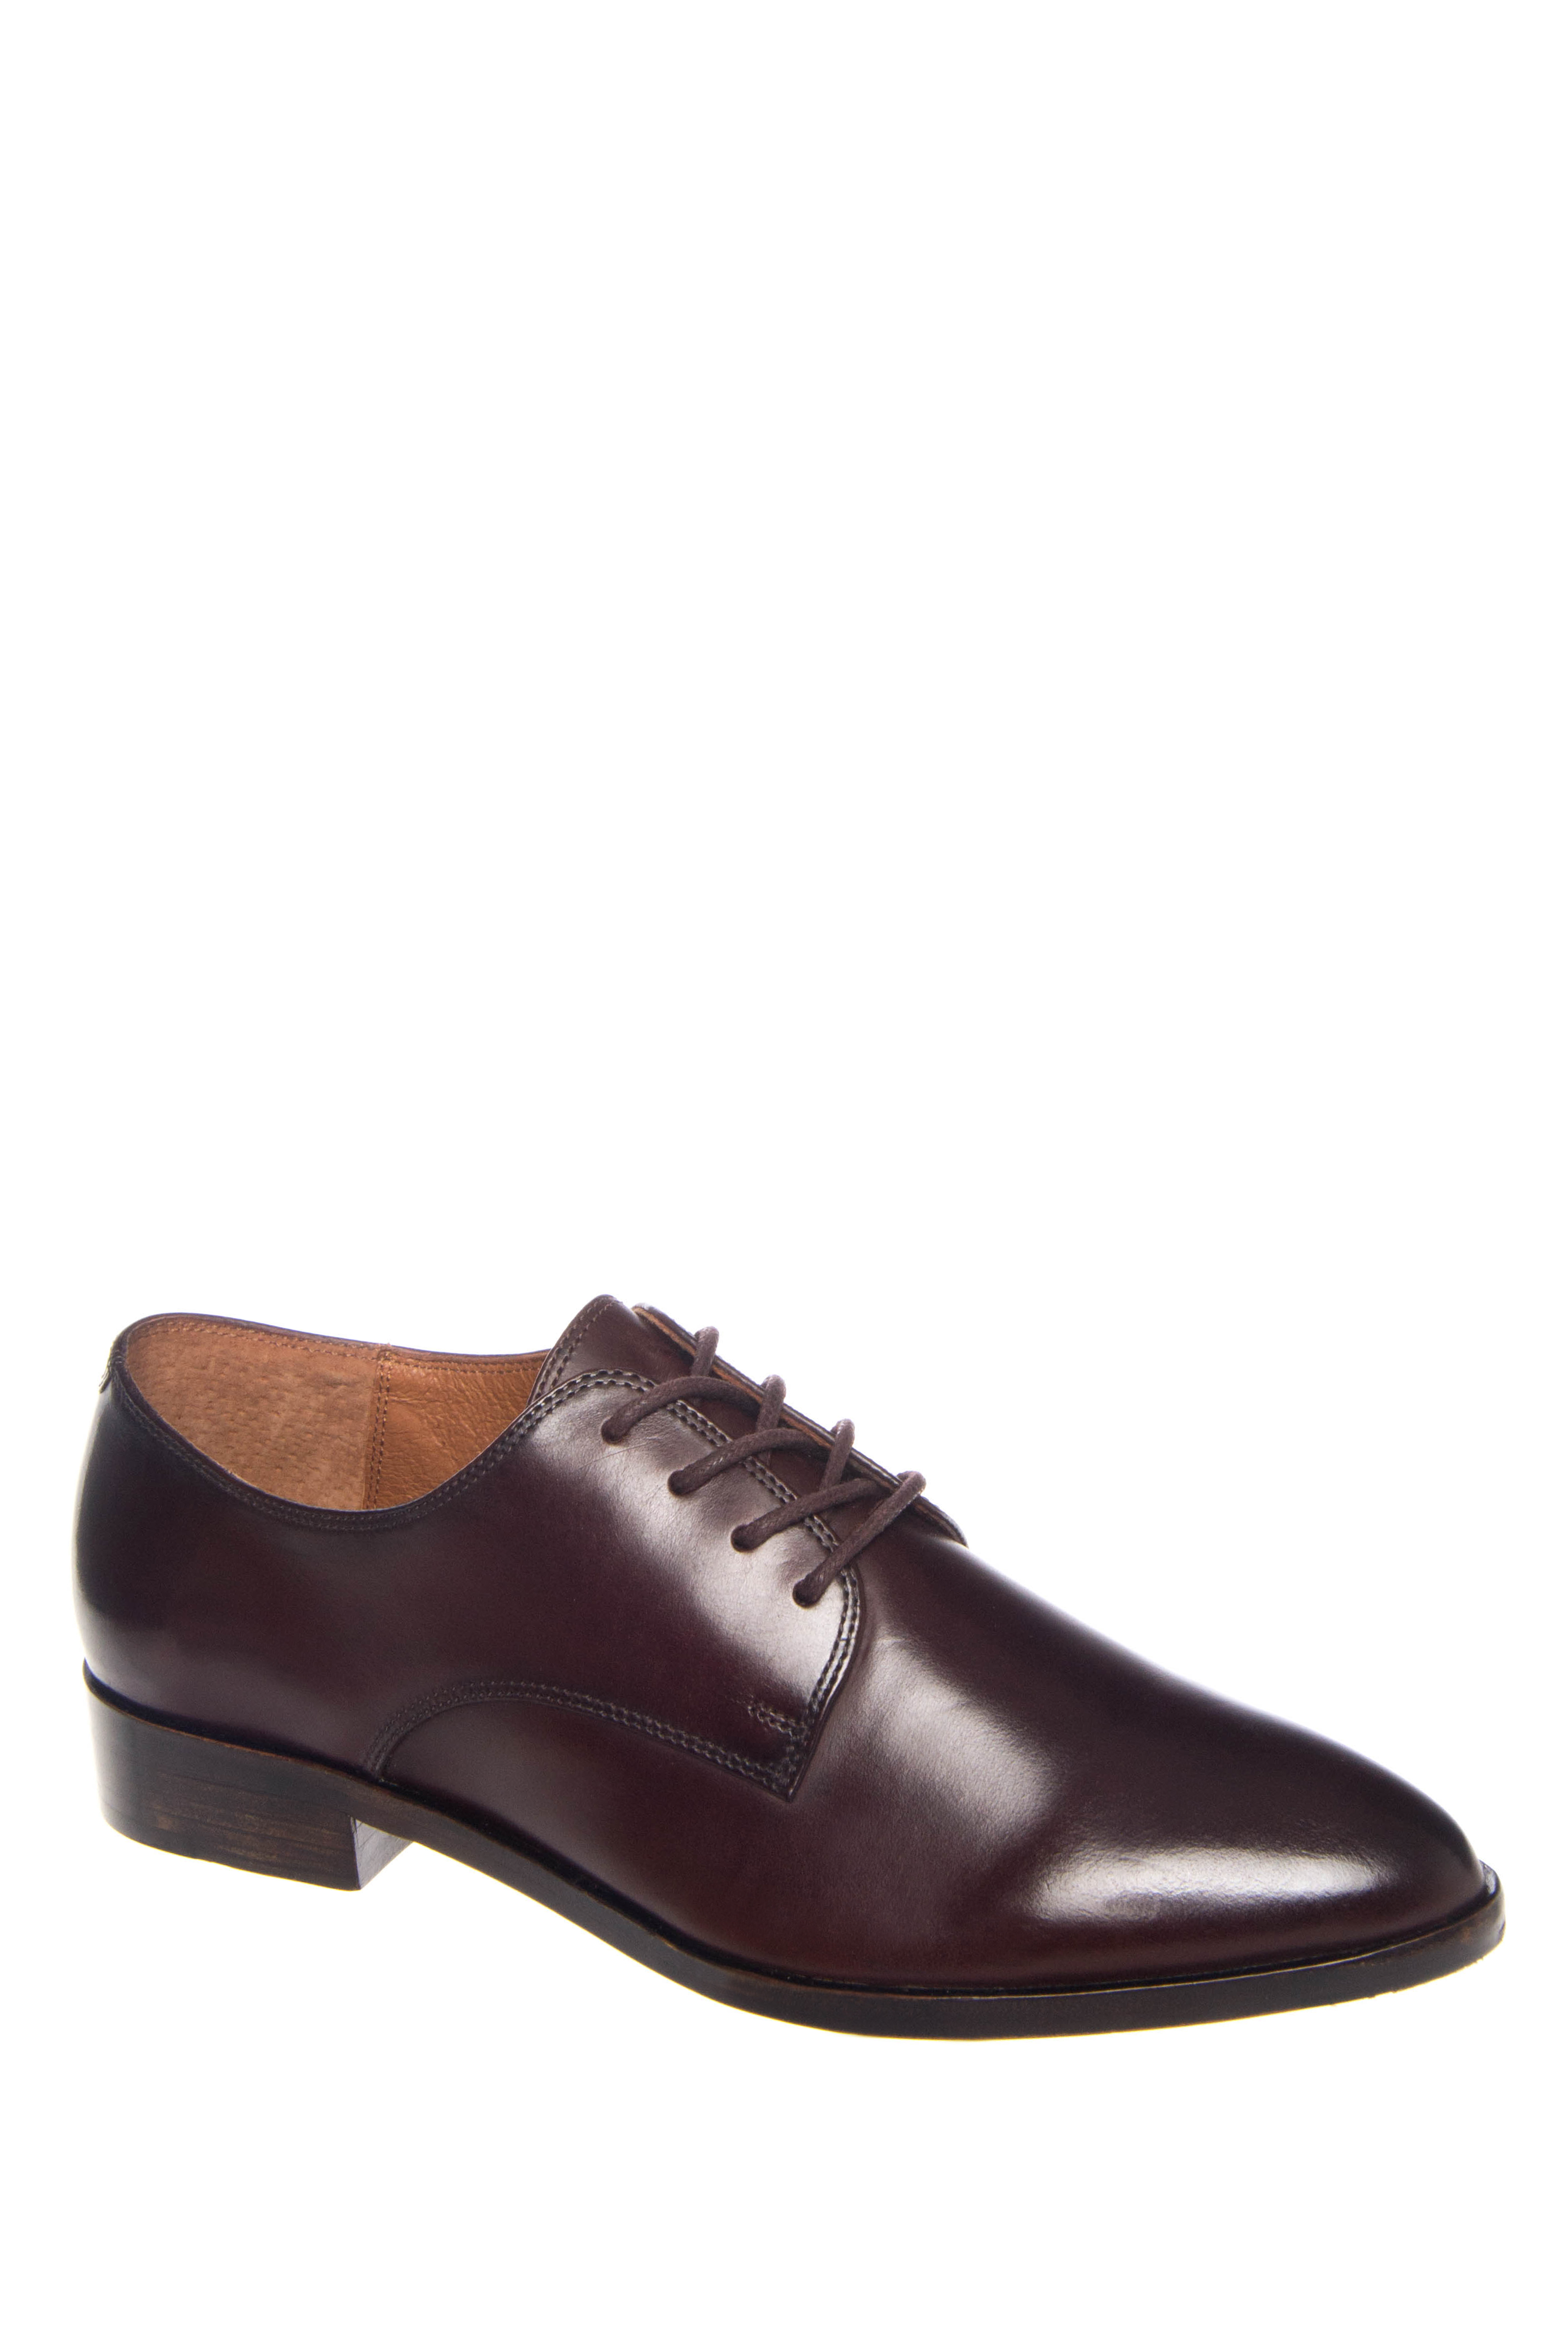 Frye Erica Leather Oxford - Brown